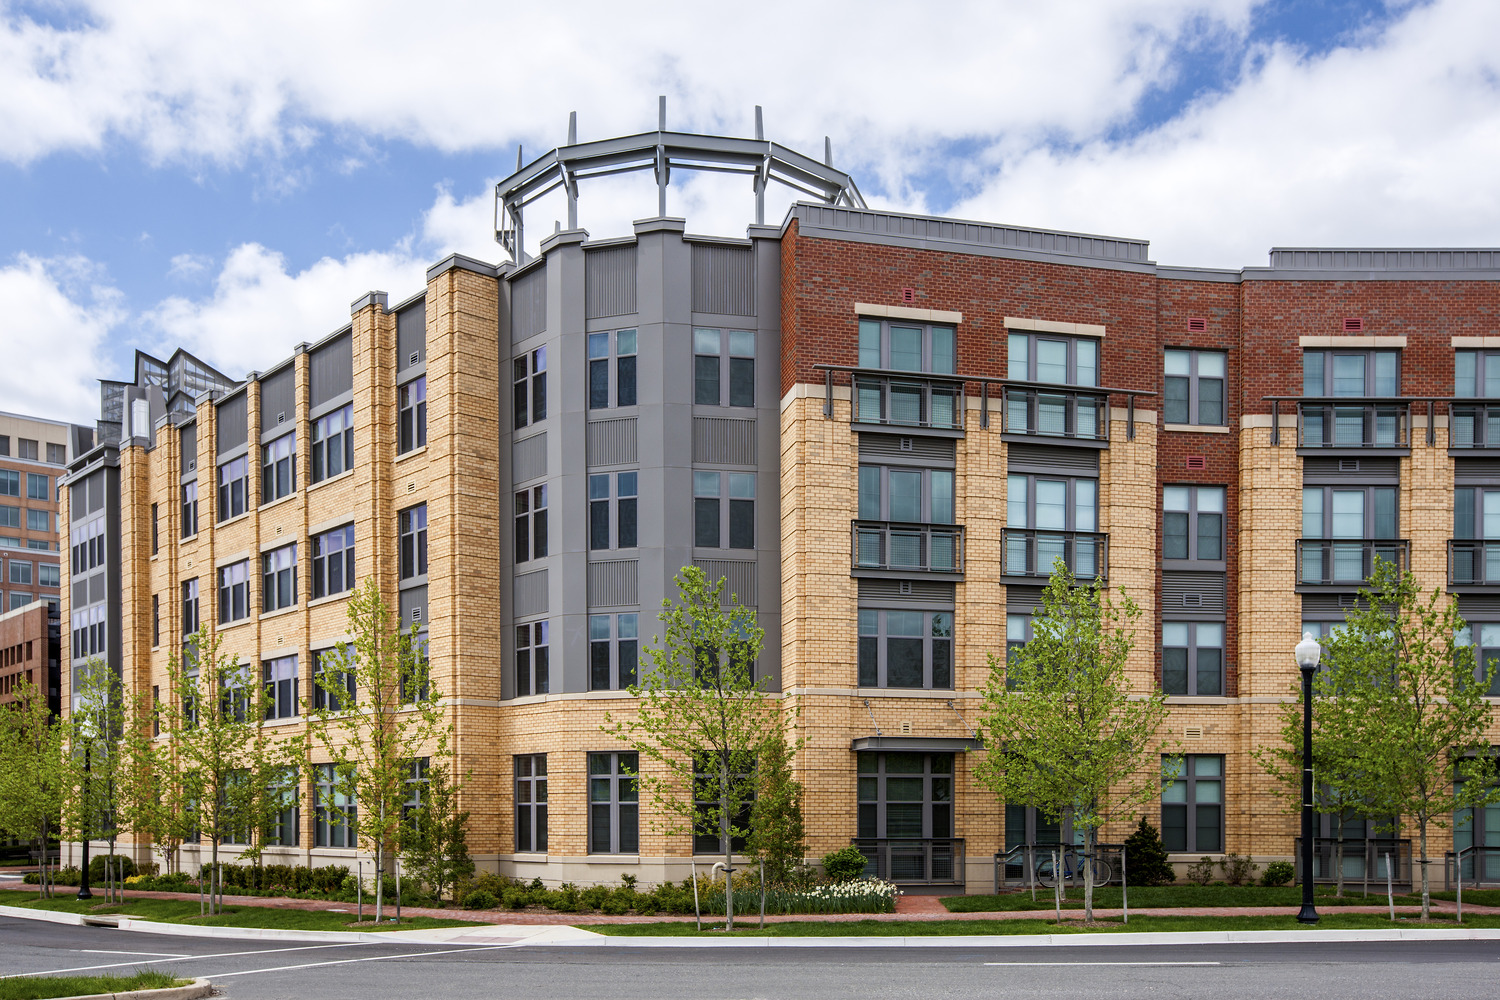 CBG builds Post Carlyle Square, a 354 Luxury Apartments Across Two Buildings Over Below-Grade Garage in Alexandria, VA - Image #4